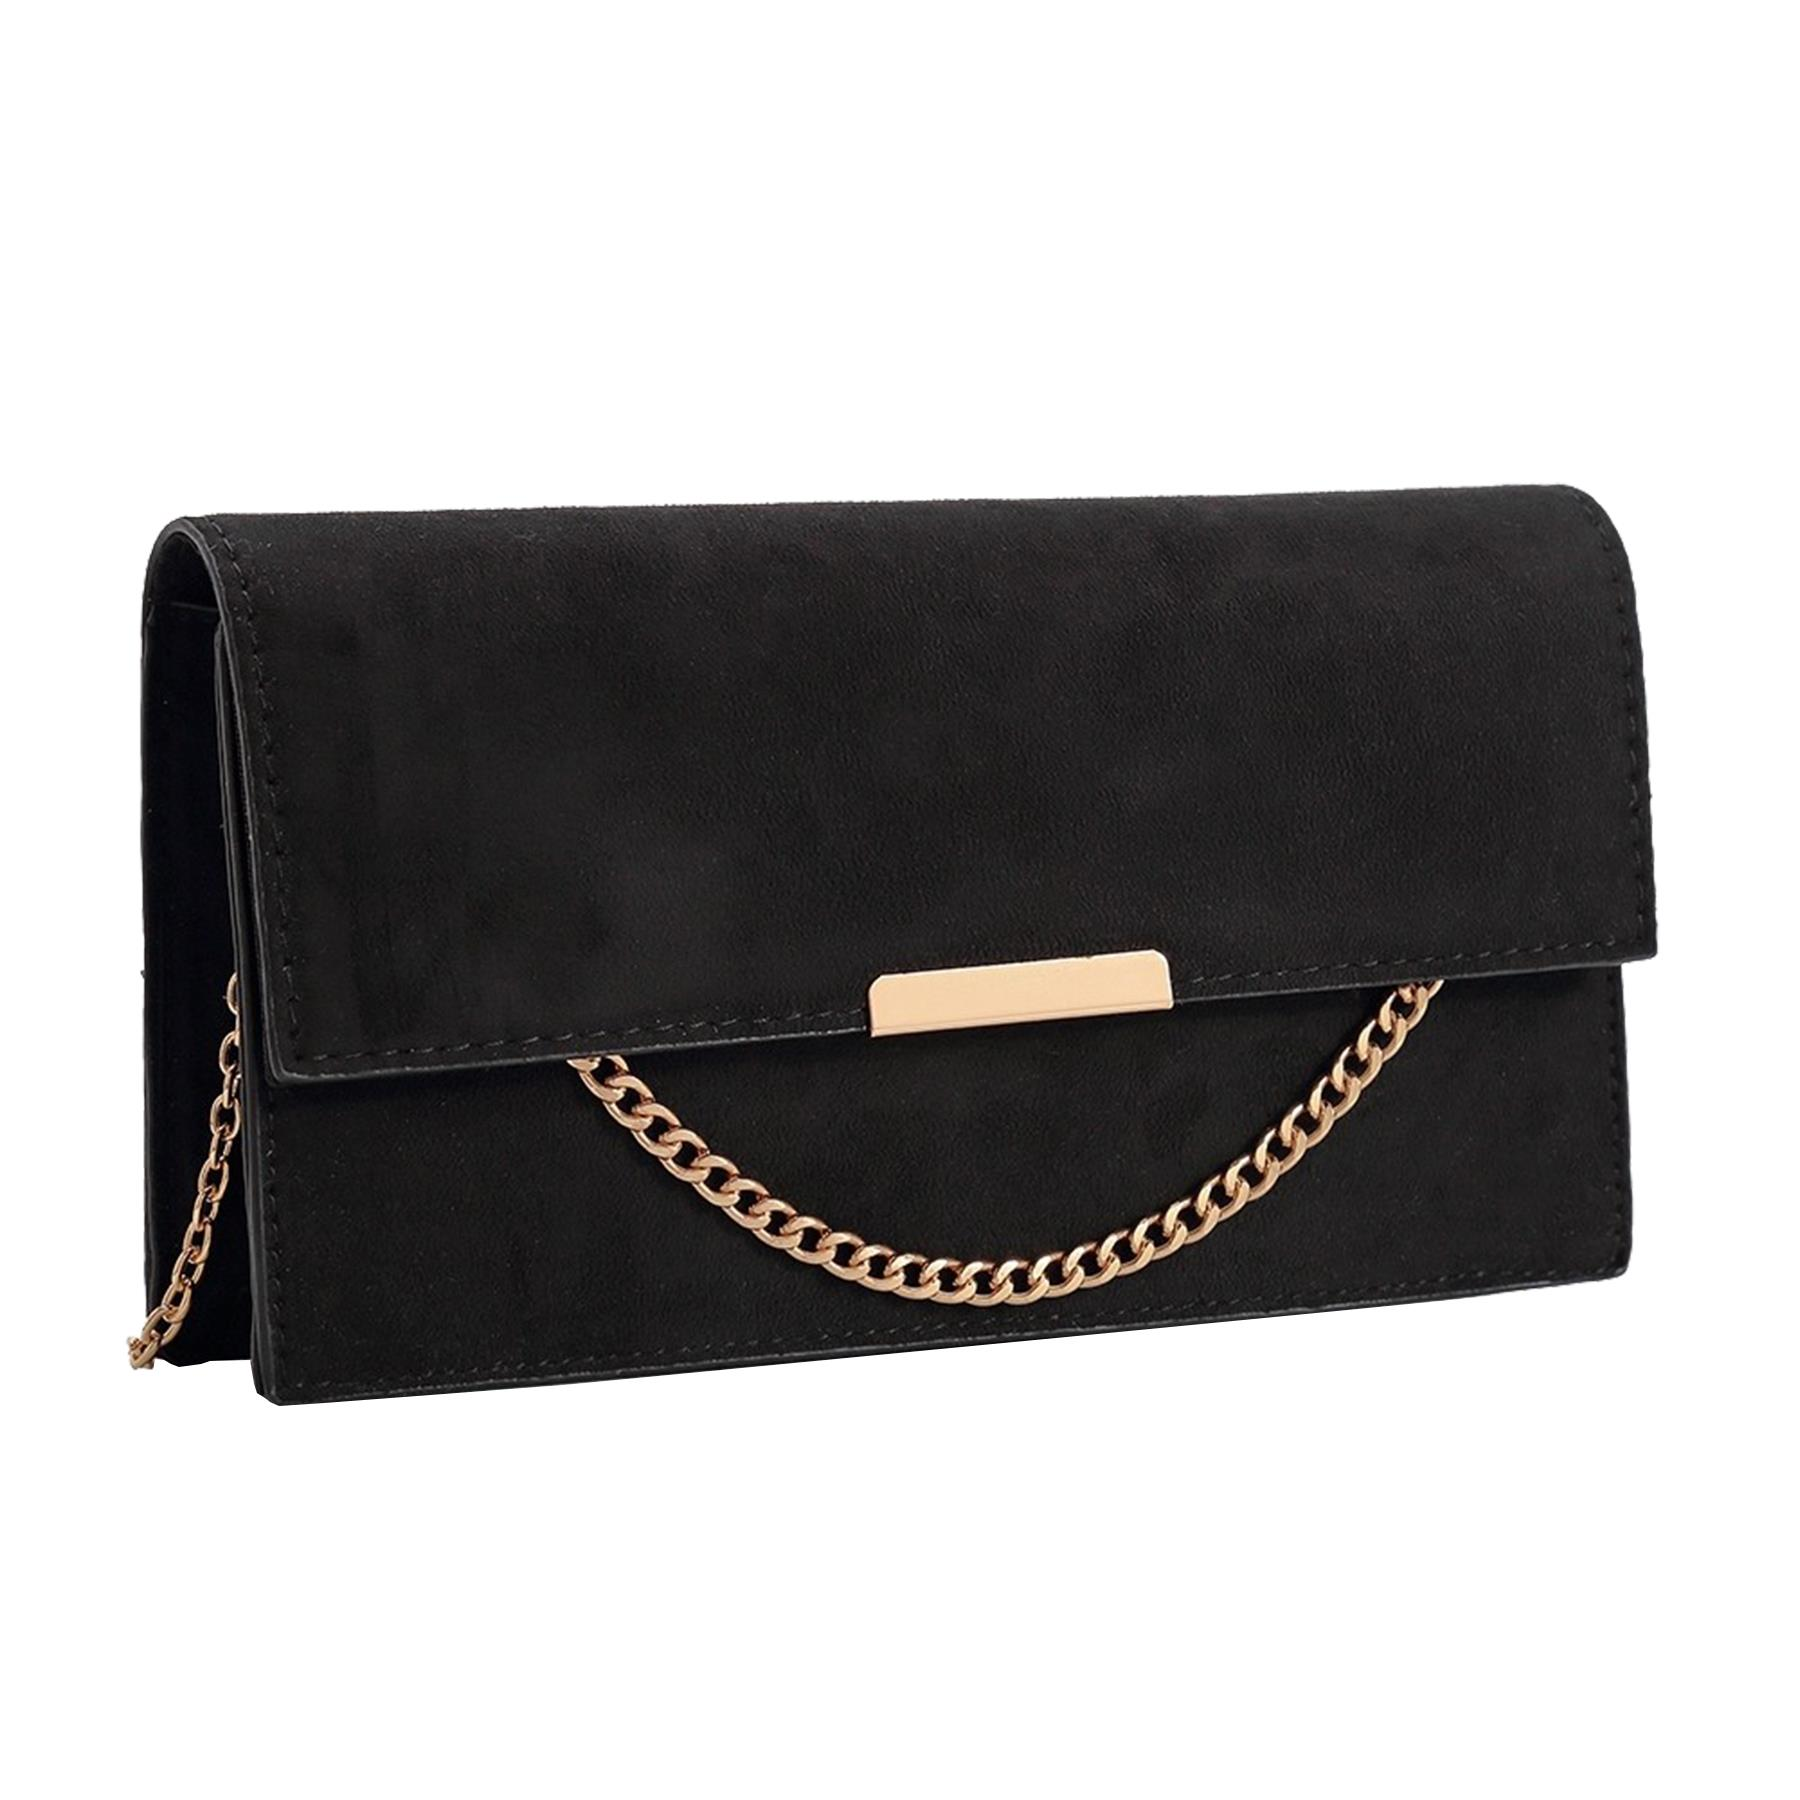 New-Synthetic-Suede-Metallic-Trim-Chain-Detail-Evening-Classic-Clutch-Bag thumbnail 3